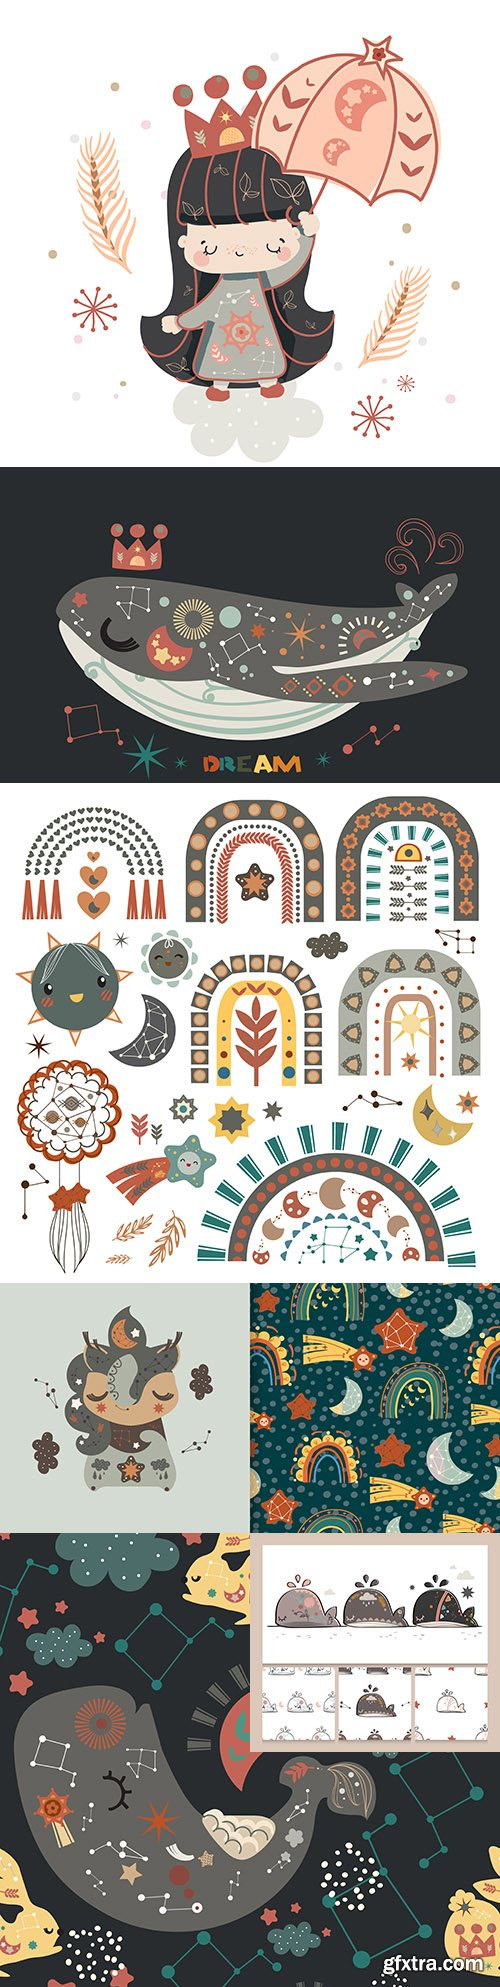 Collection of bohemian pop art illustrations with elements